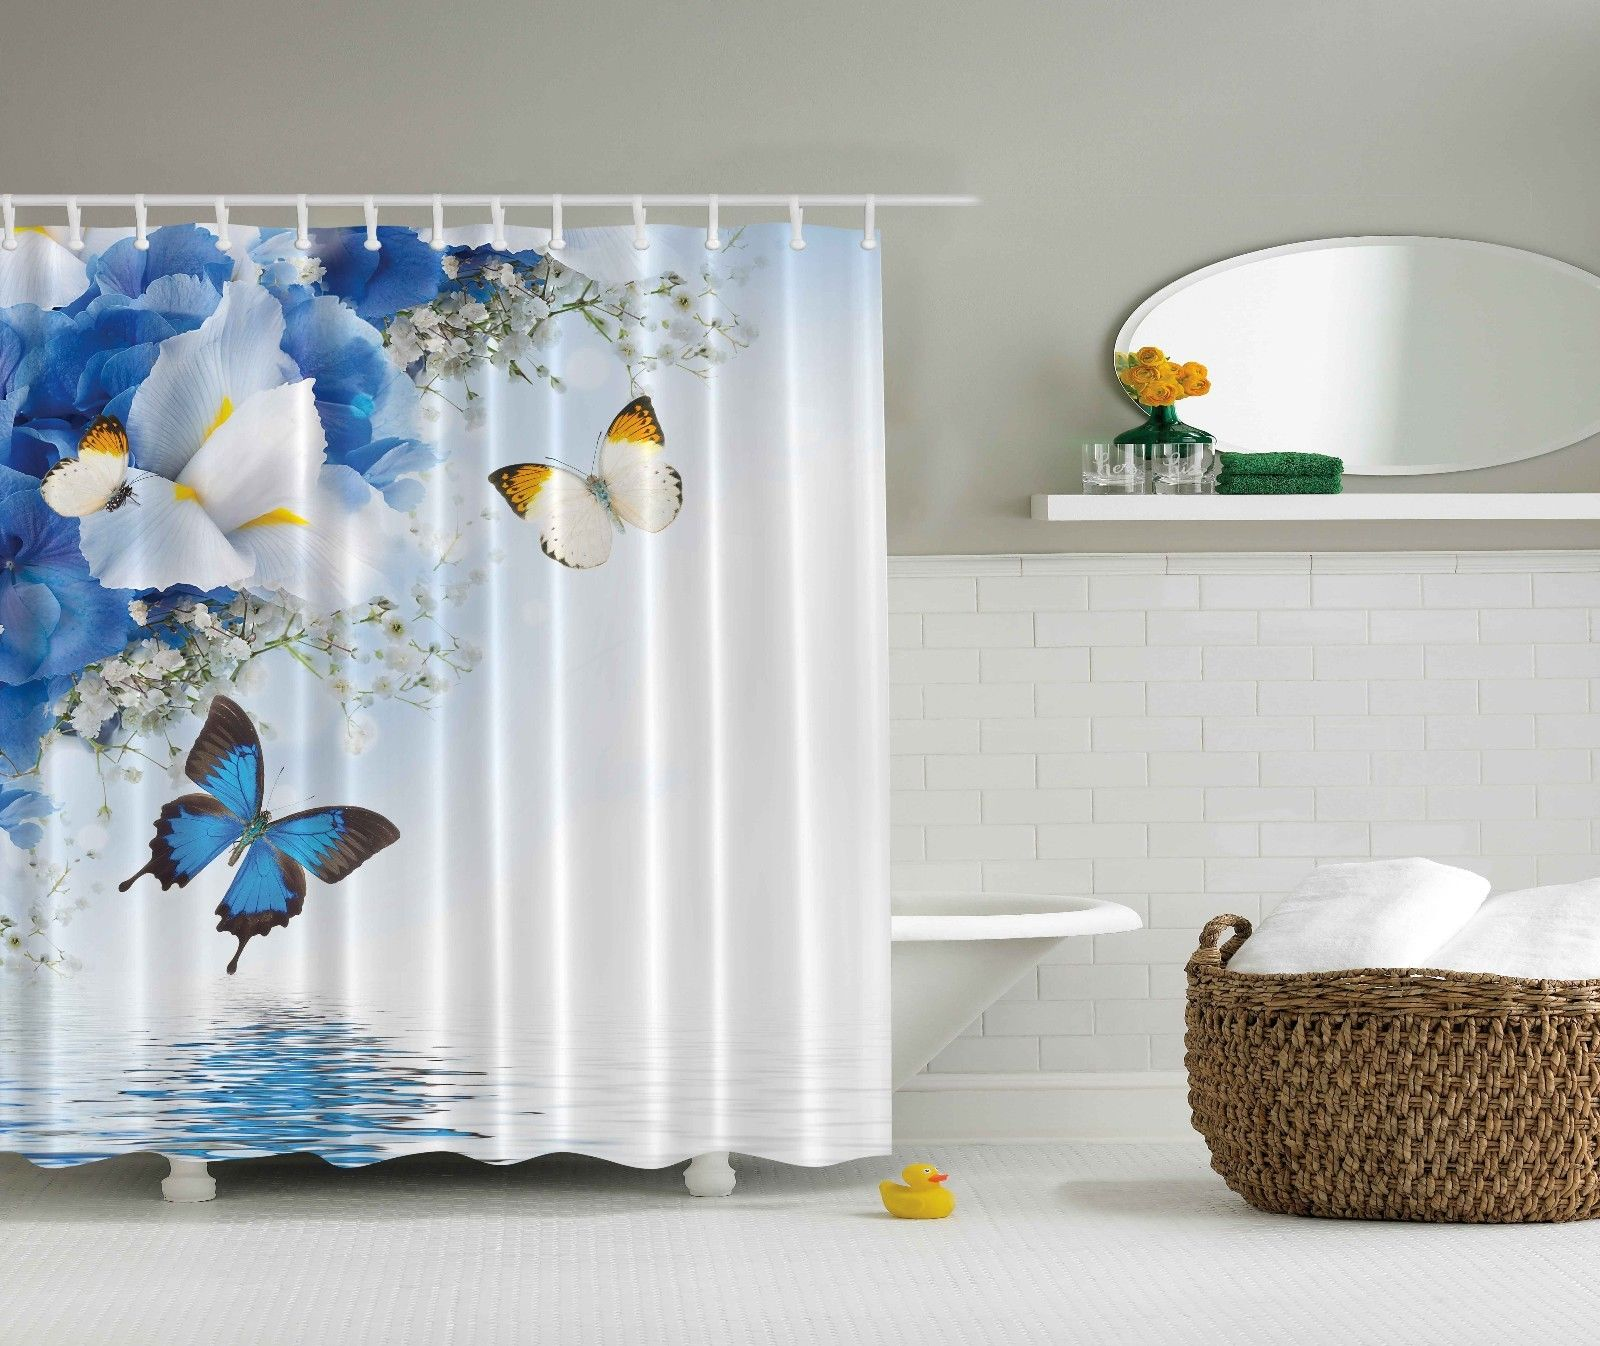 82  Shower Curtains 84 Inches Long  Waterford Sophia Curtain Pair 84 Inches Long, Amazon Extra